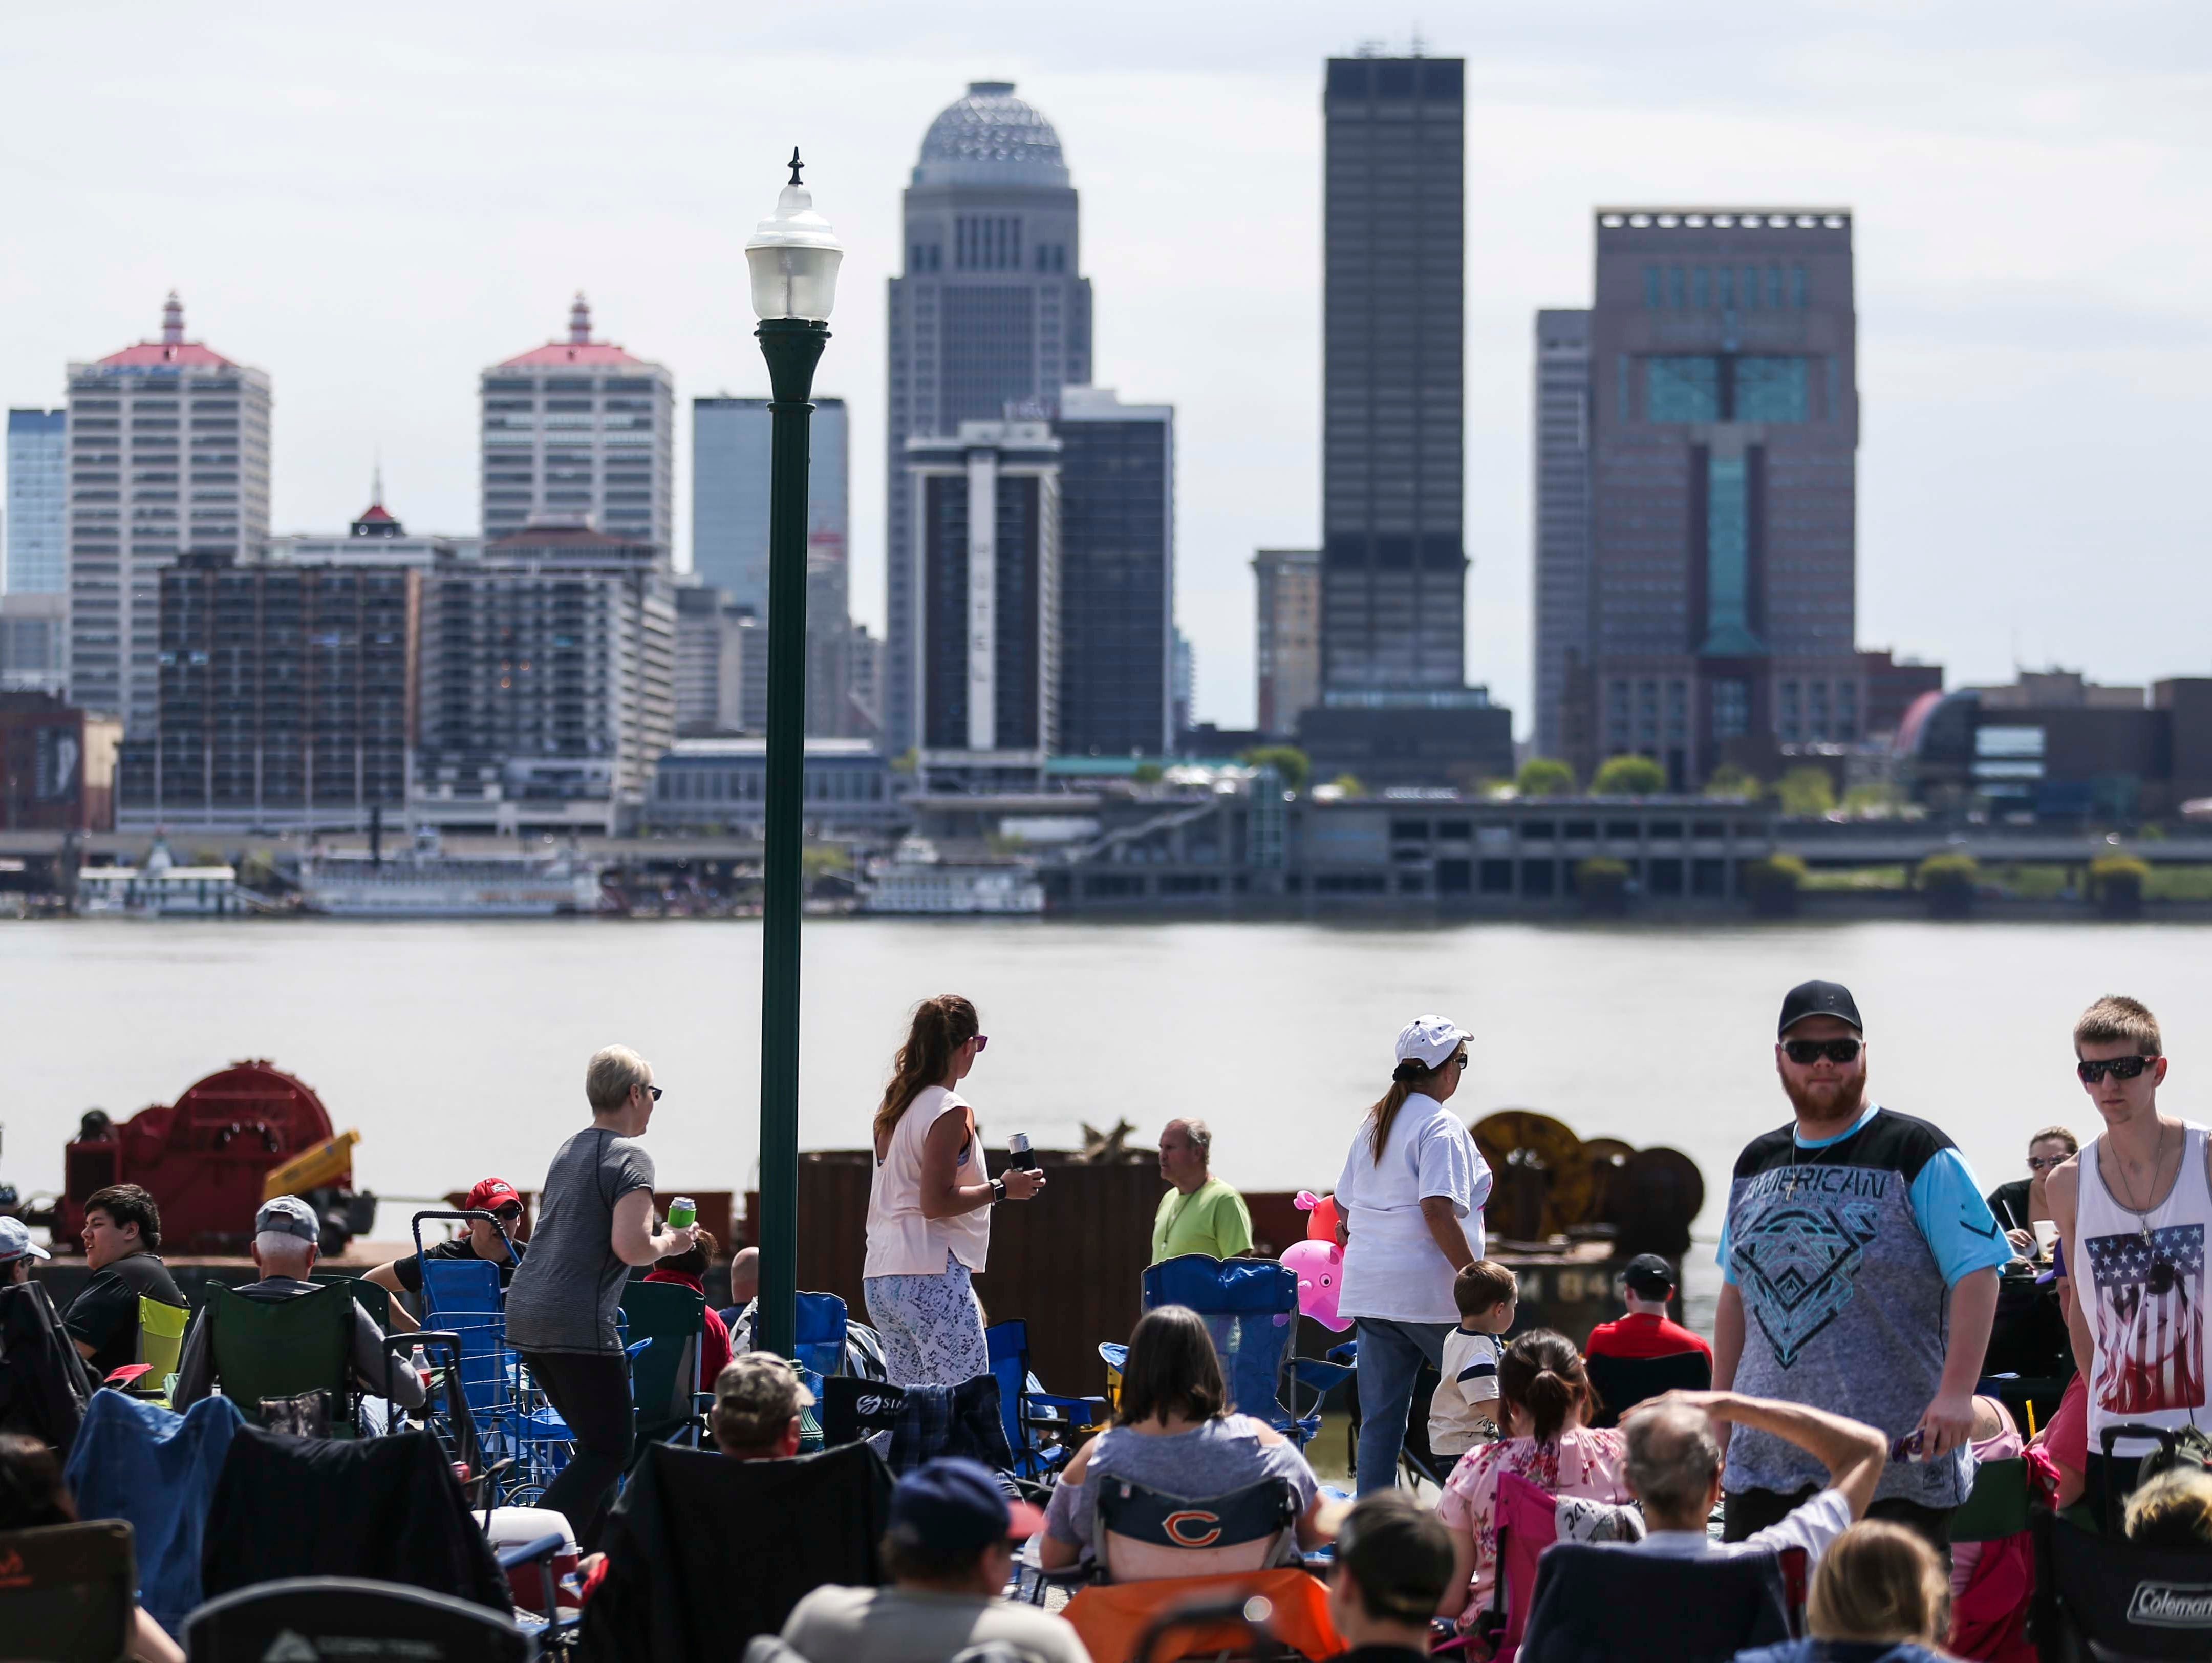 Scenes from Thunder Over Louisville from the Indiana riverfront. April 13, 2019